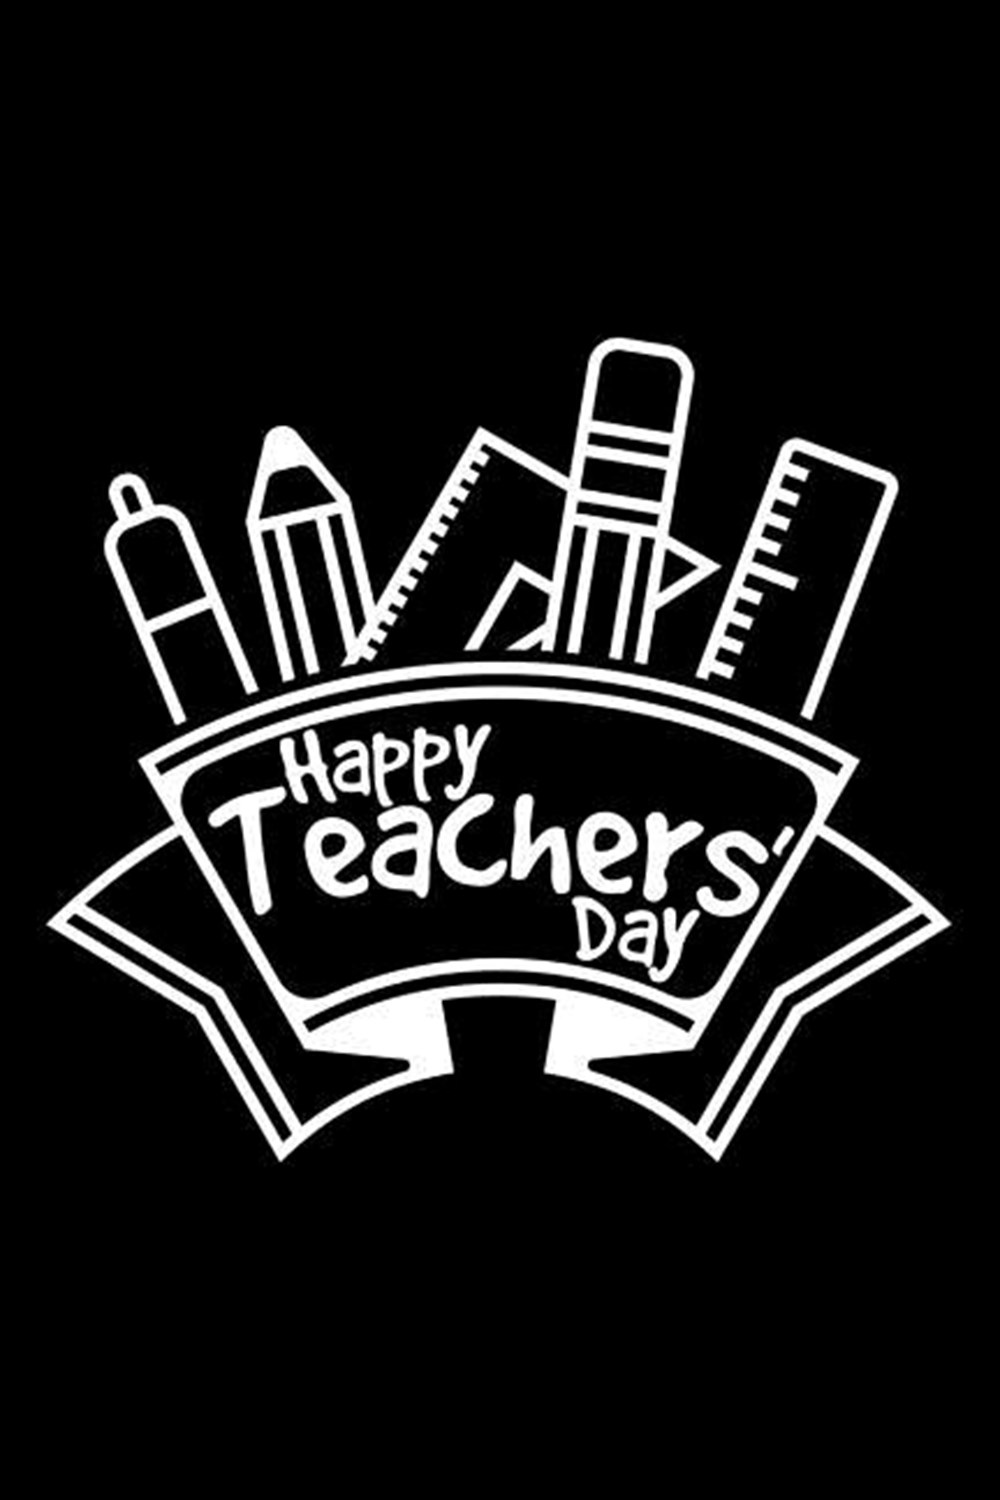 Happy Teachers Day Blank Paper Sketch Book - Artist Sketch Pad Journal for Sketching, Doodling, Draw